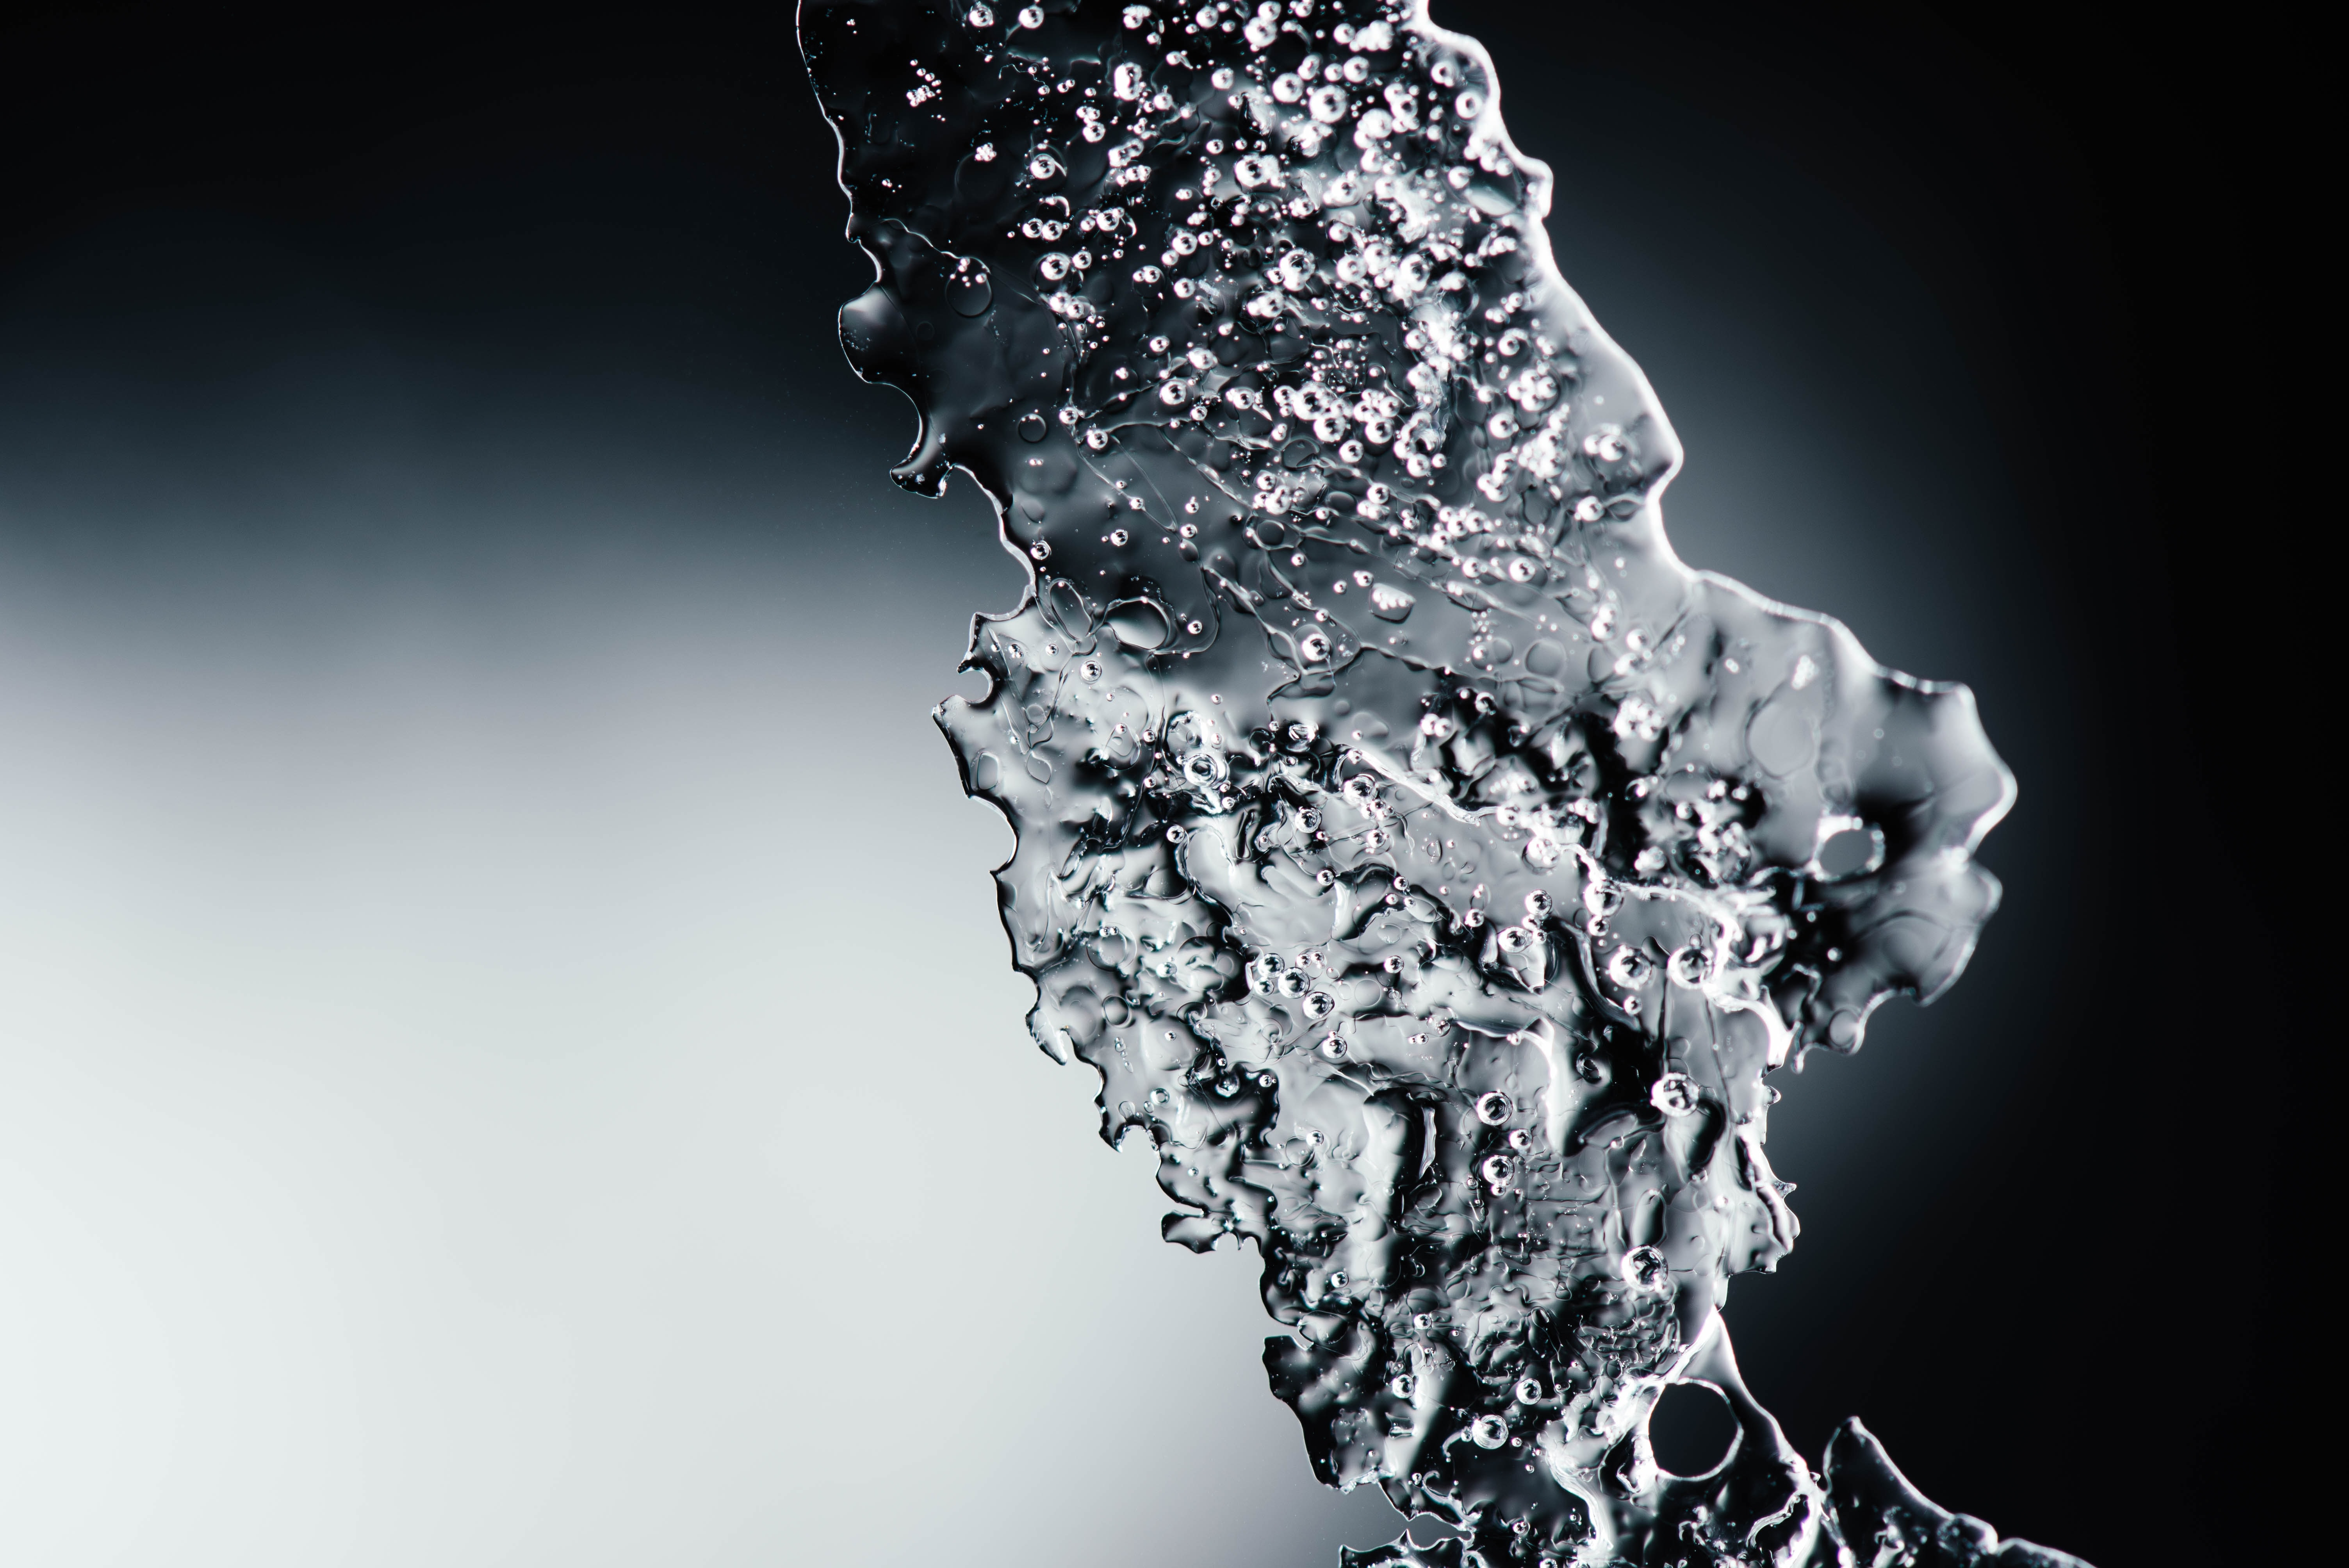 time lapsed photography of water drop